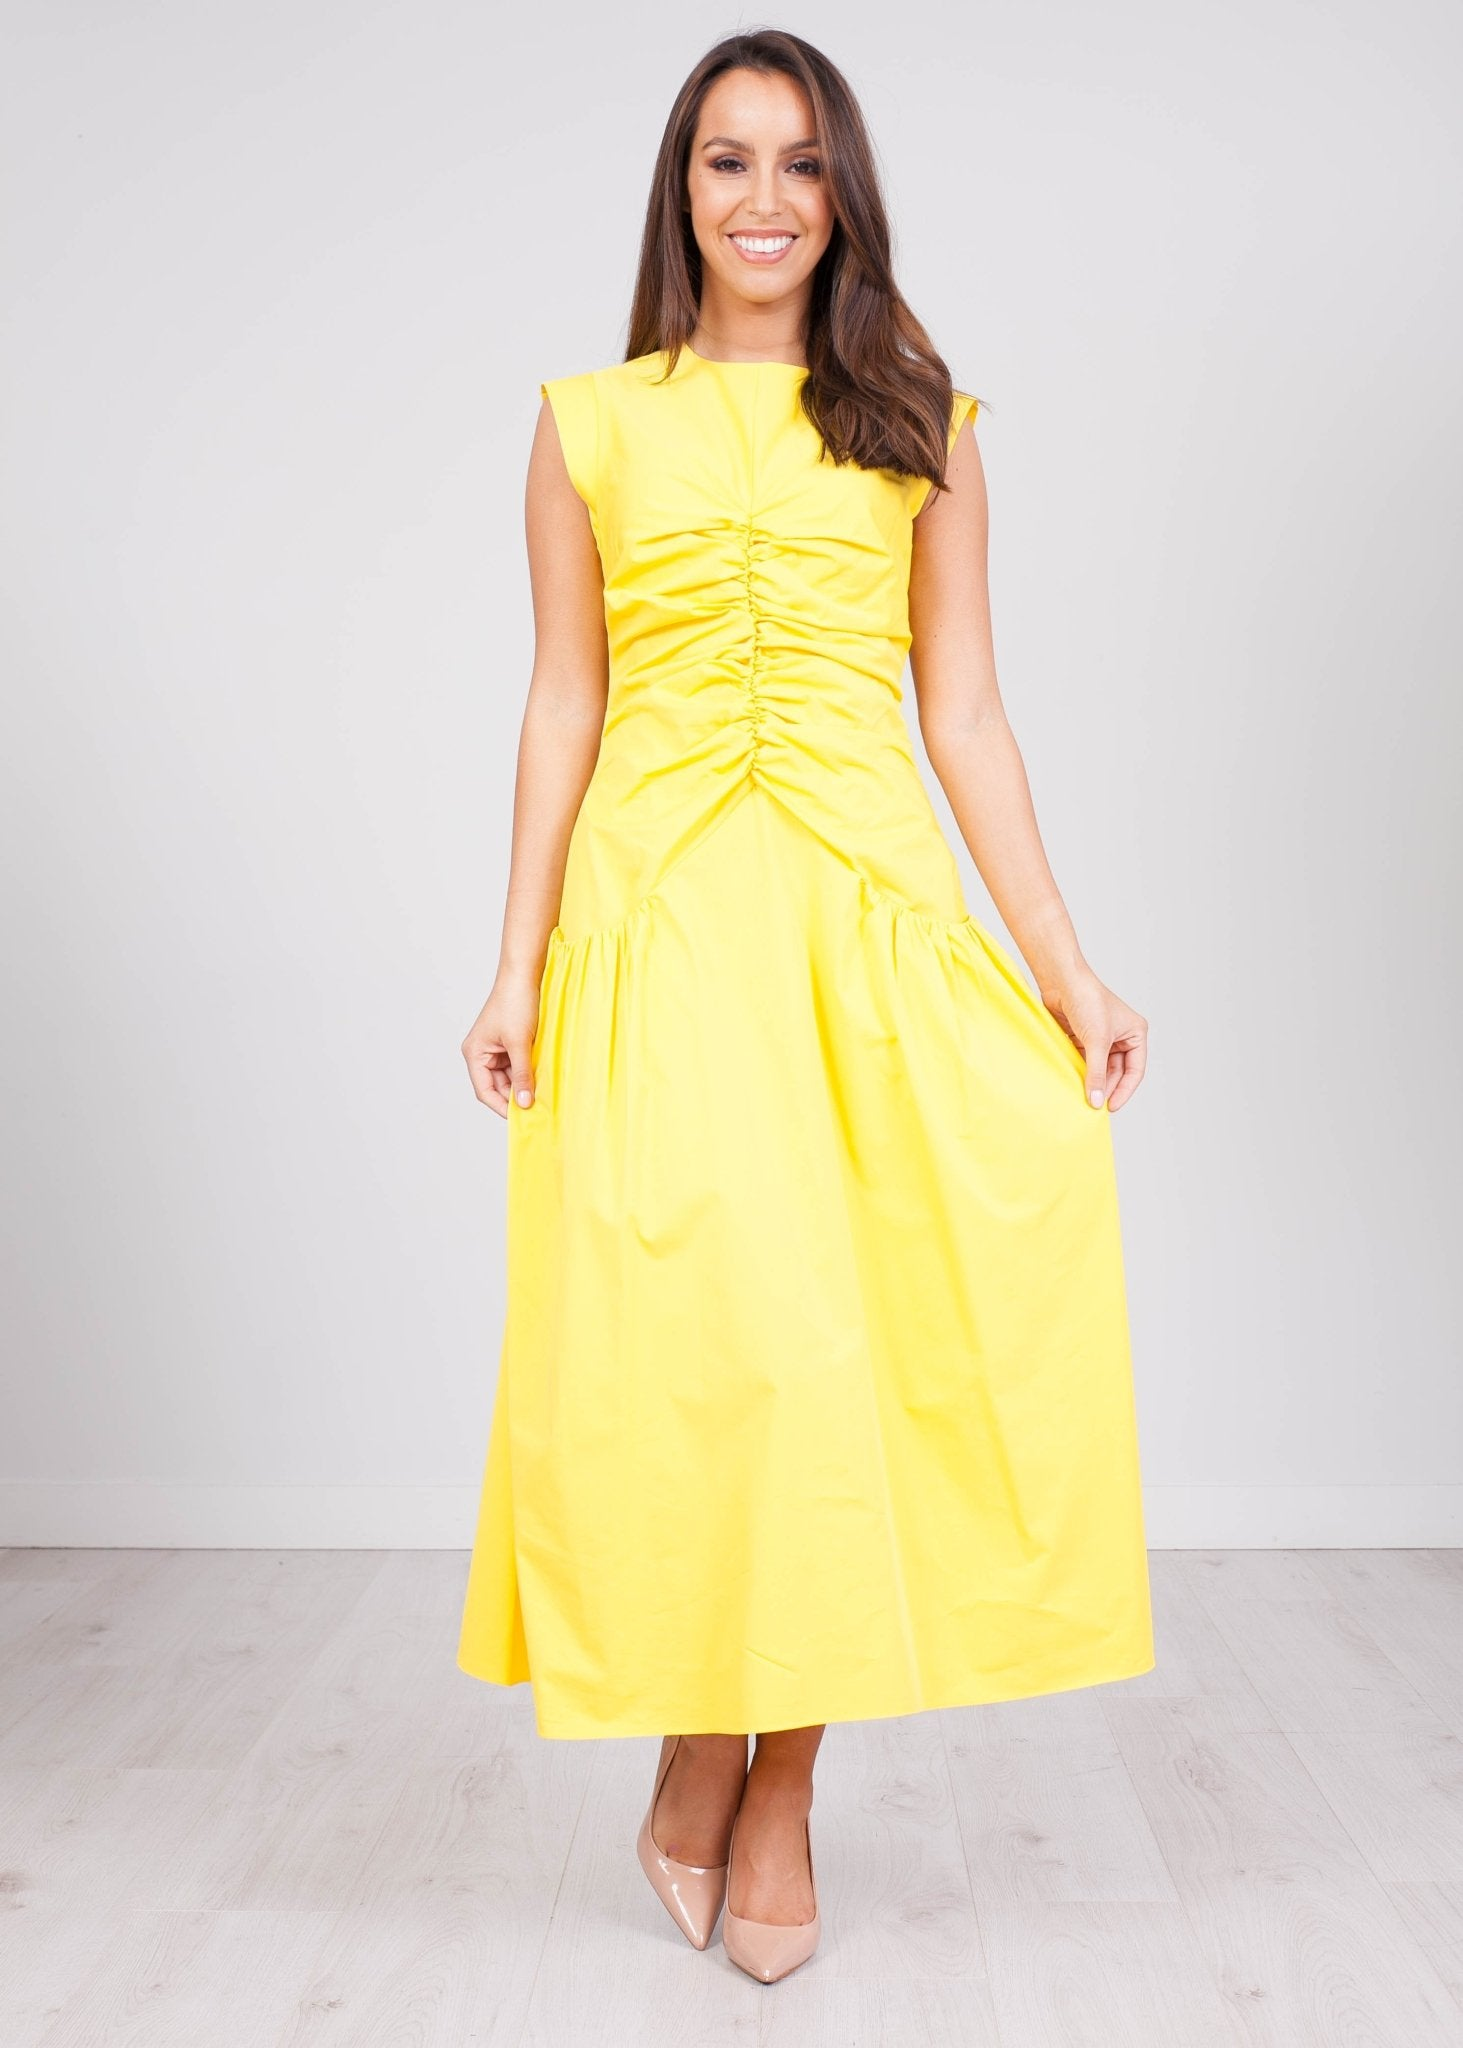 Eva Yellow Dress - The Walk in Wardrobe